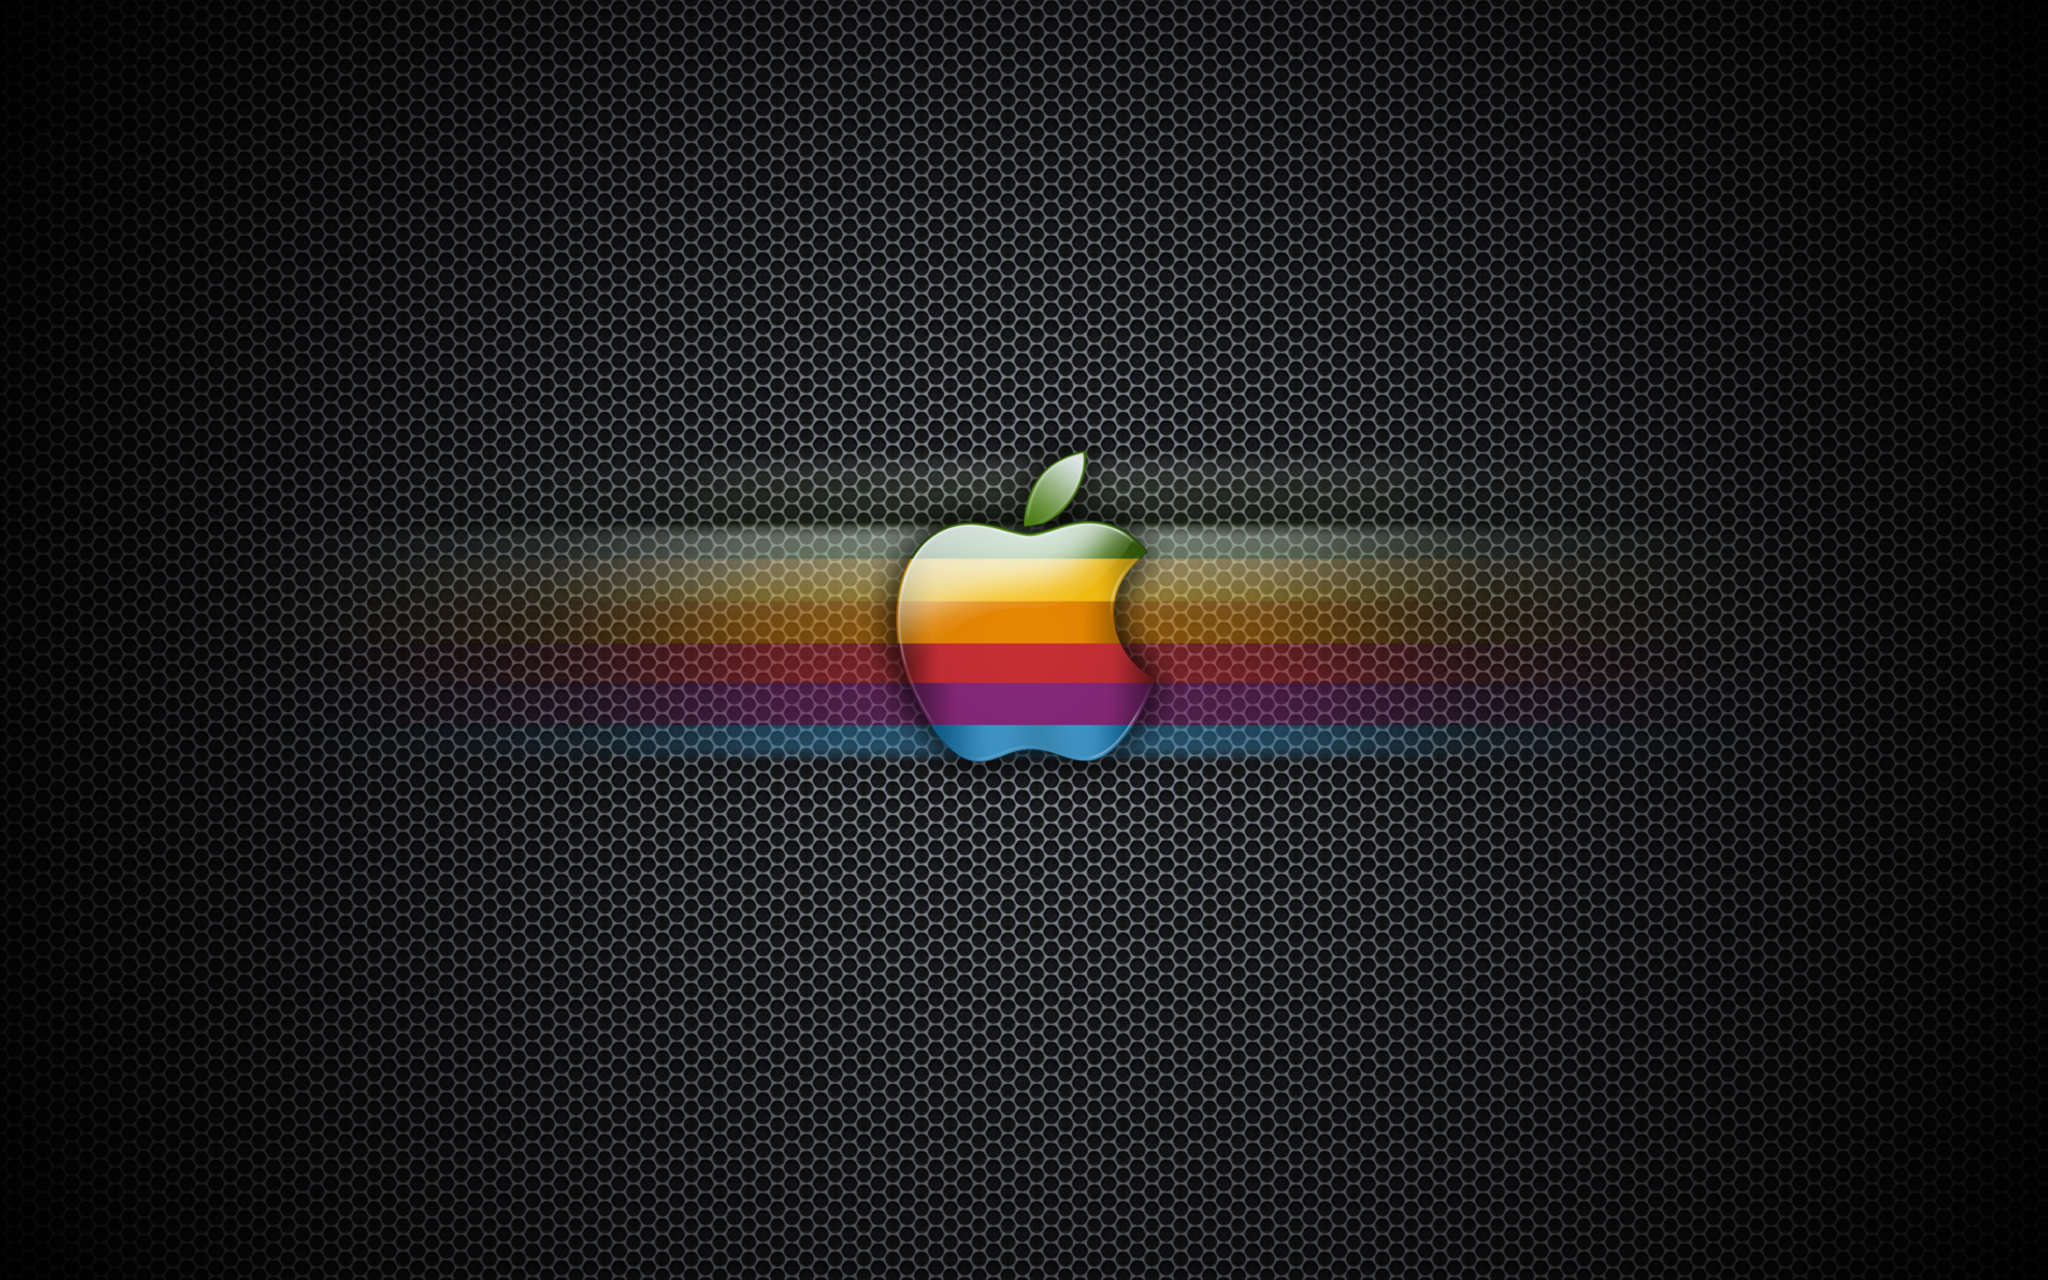 rainbow-apple-logo-paints-technology-background-hd-wallpaper-fantasy-technology-images-apple-logo-wallpaper-for-iphone-4